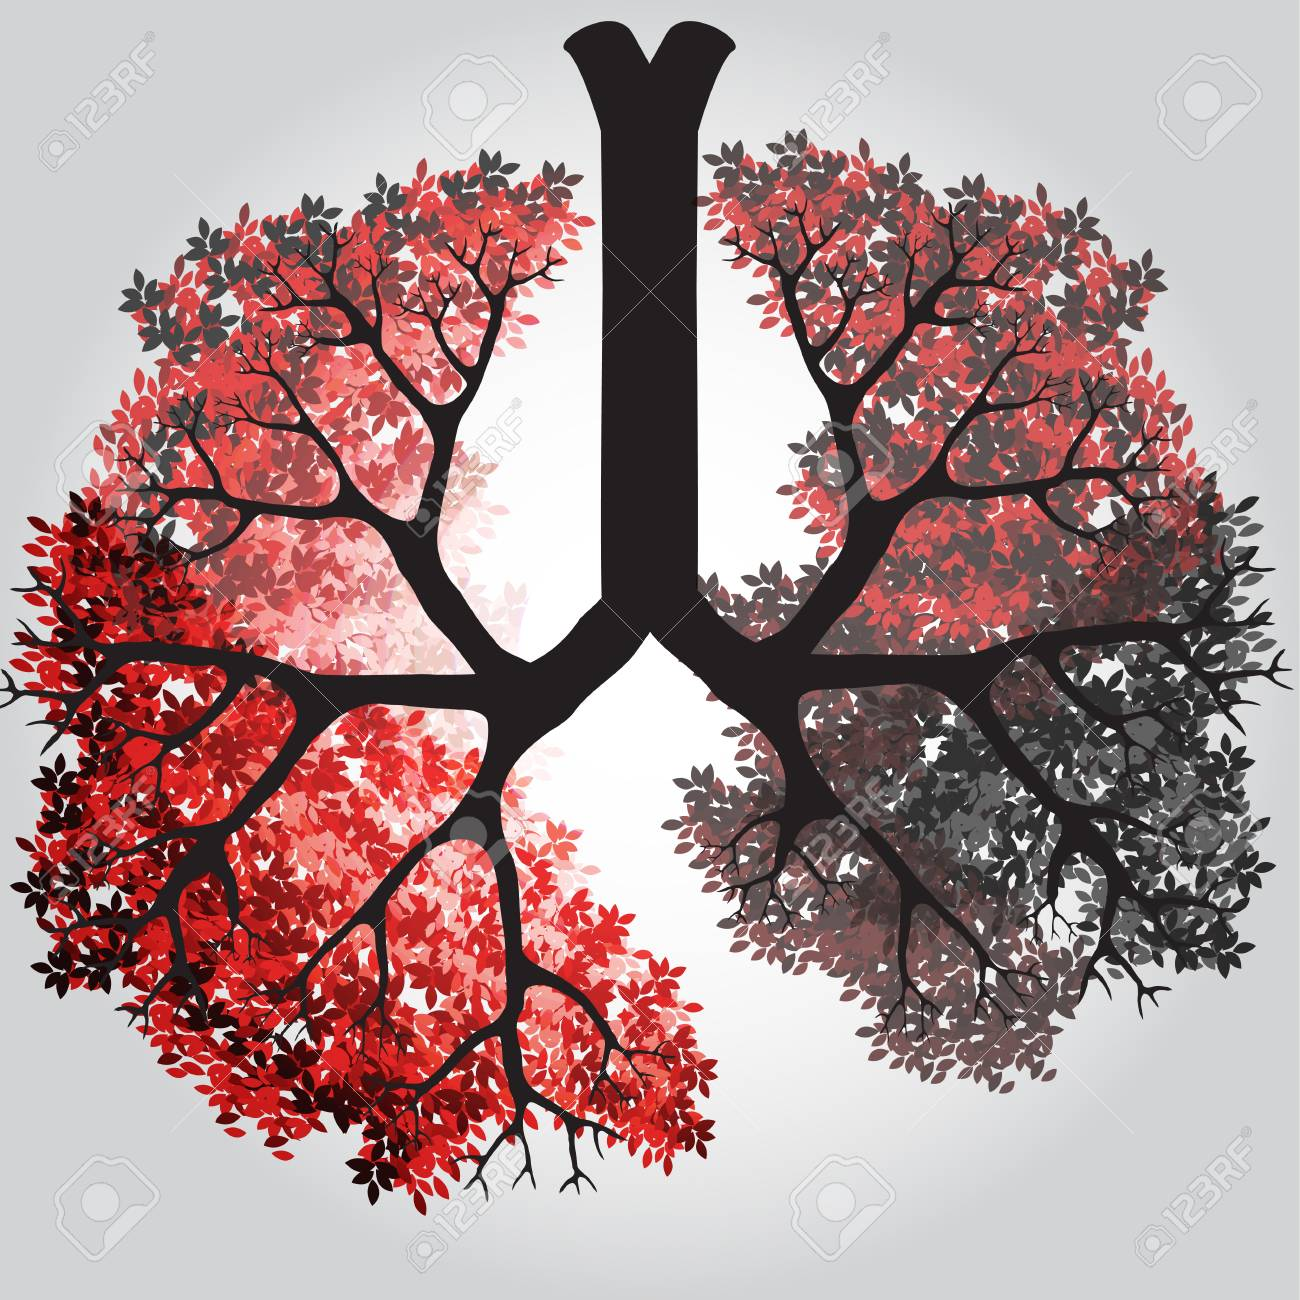 Tree Branches Like Lungs - Vector Illustration - 99670050